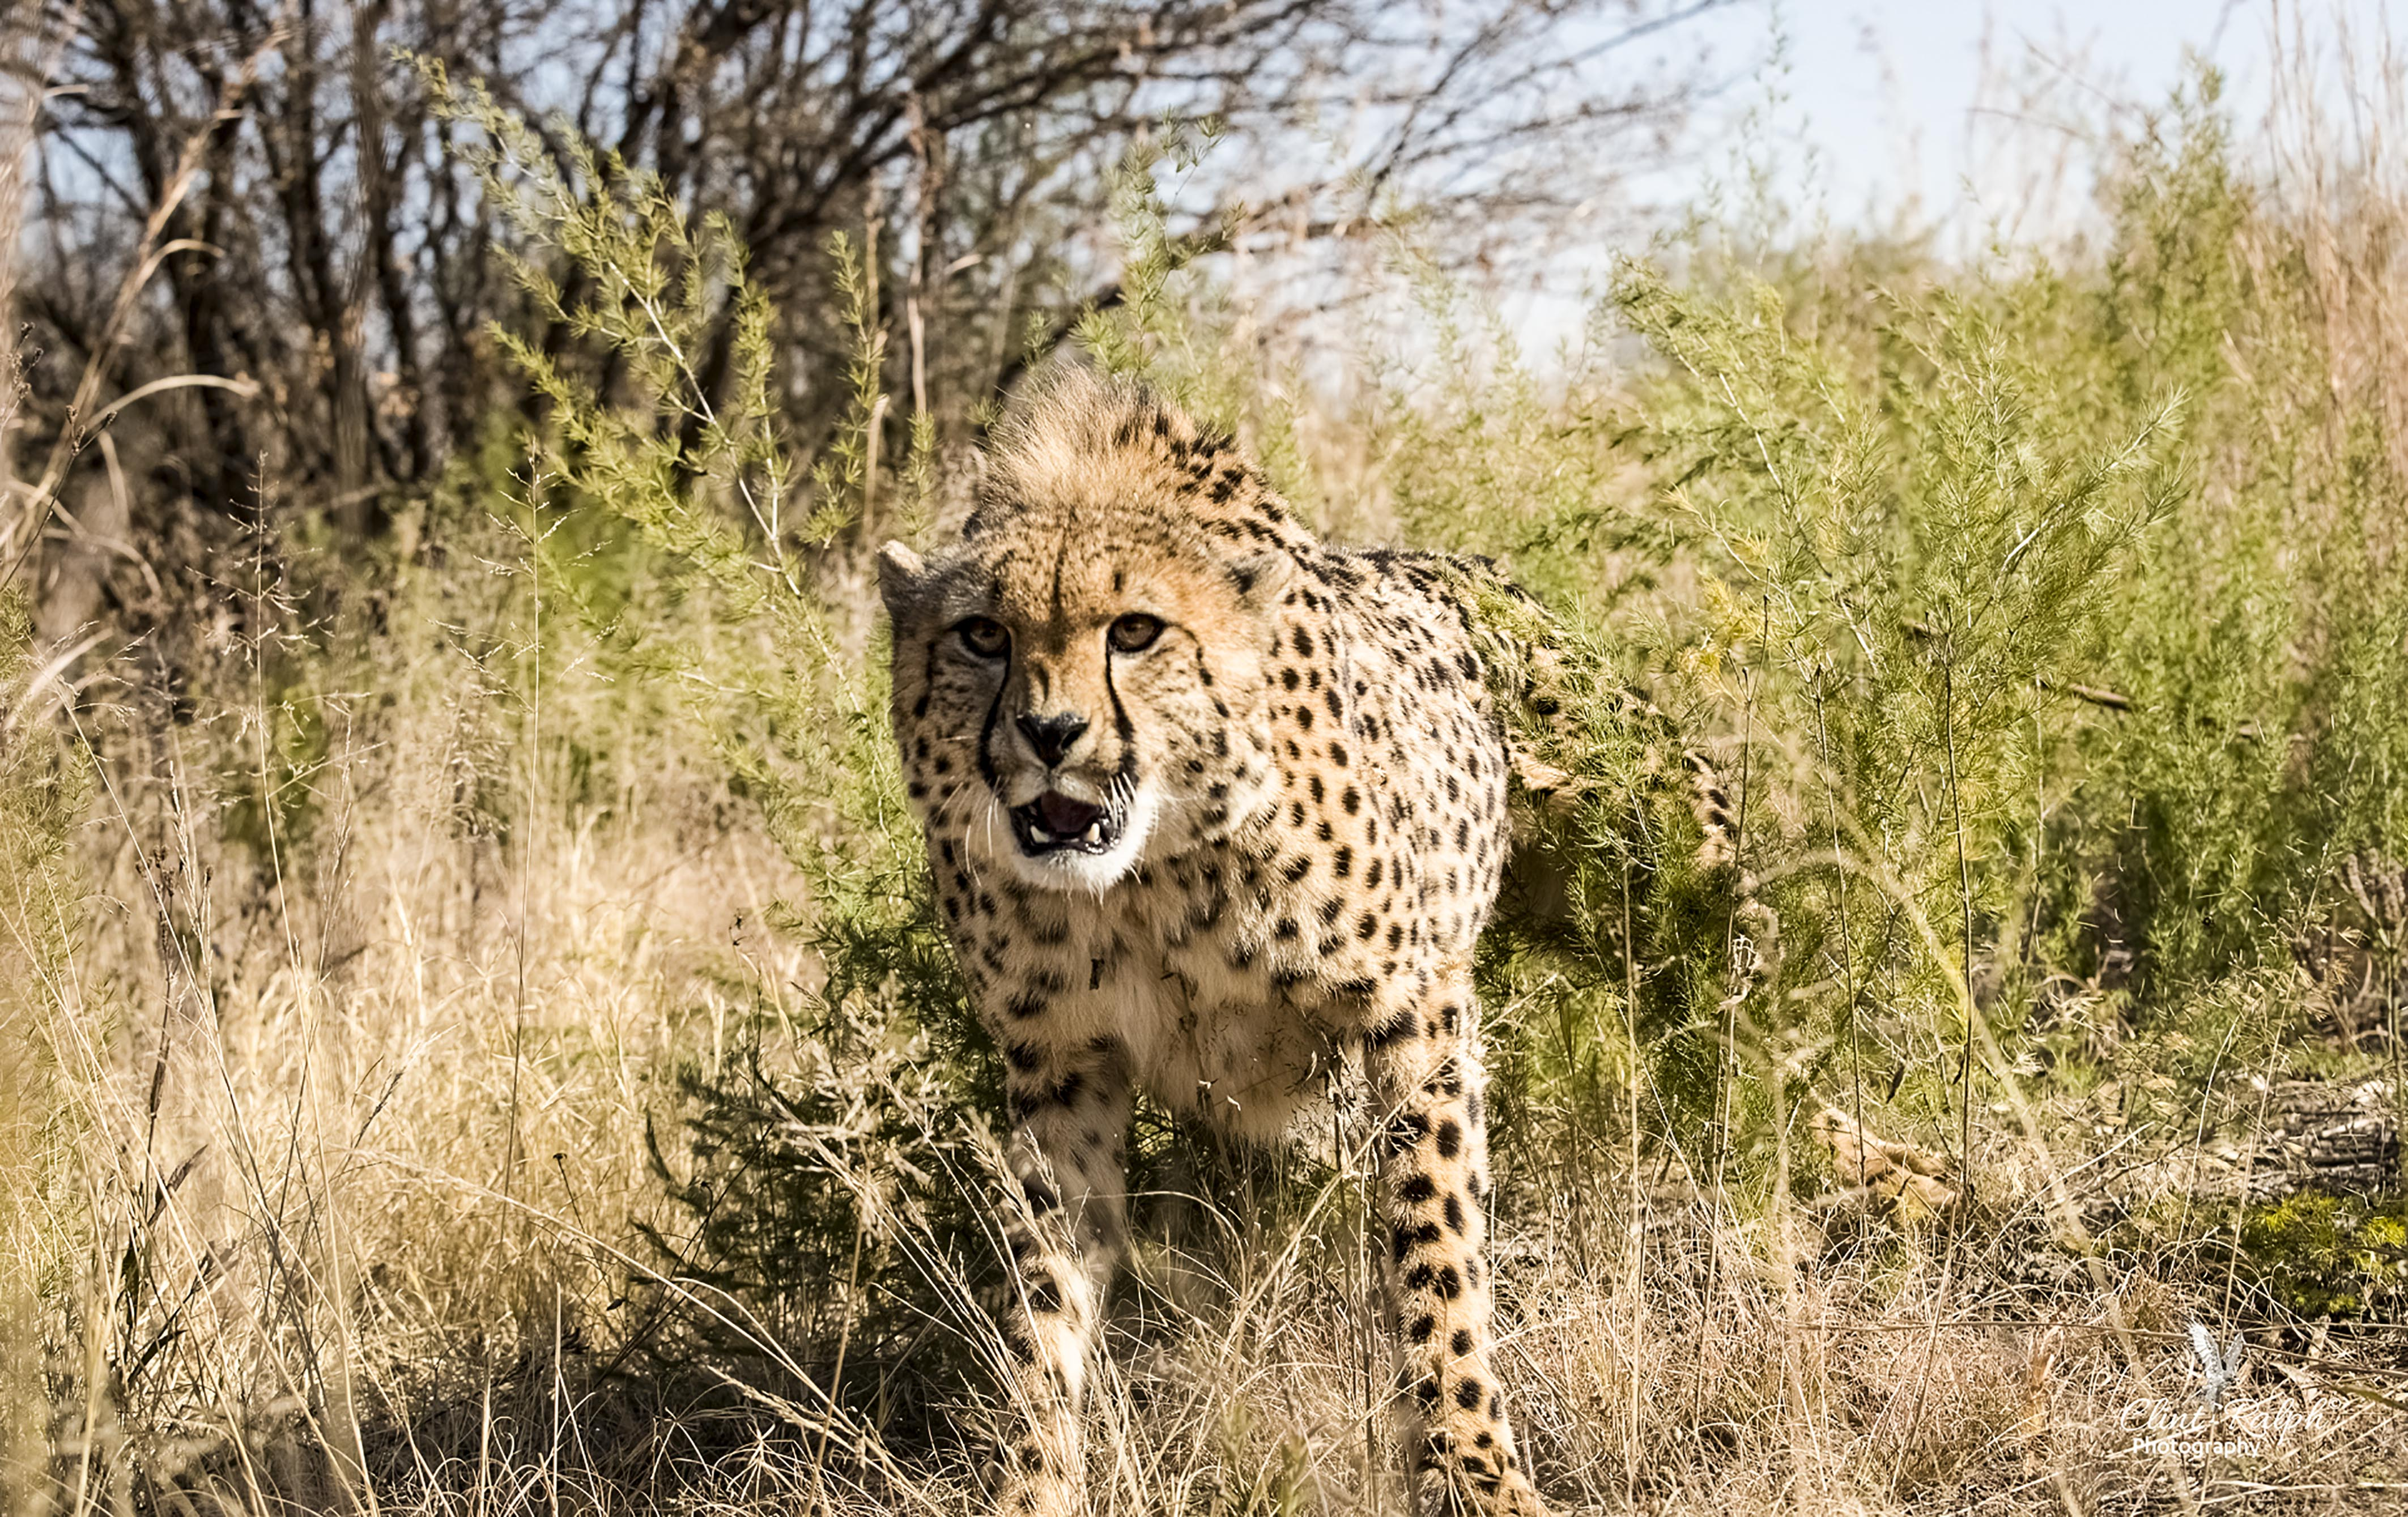 Cheetah Charges At Photographer Caters News Agency